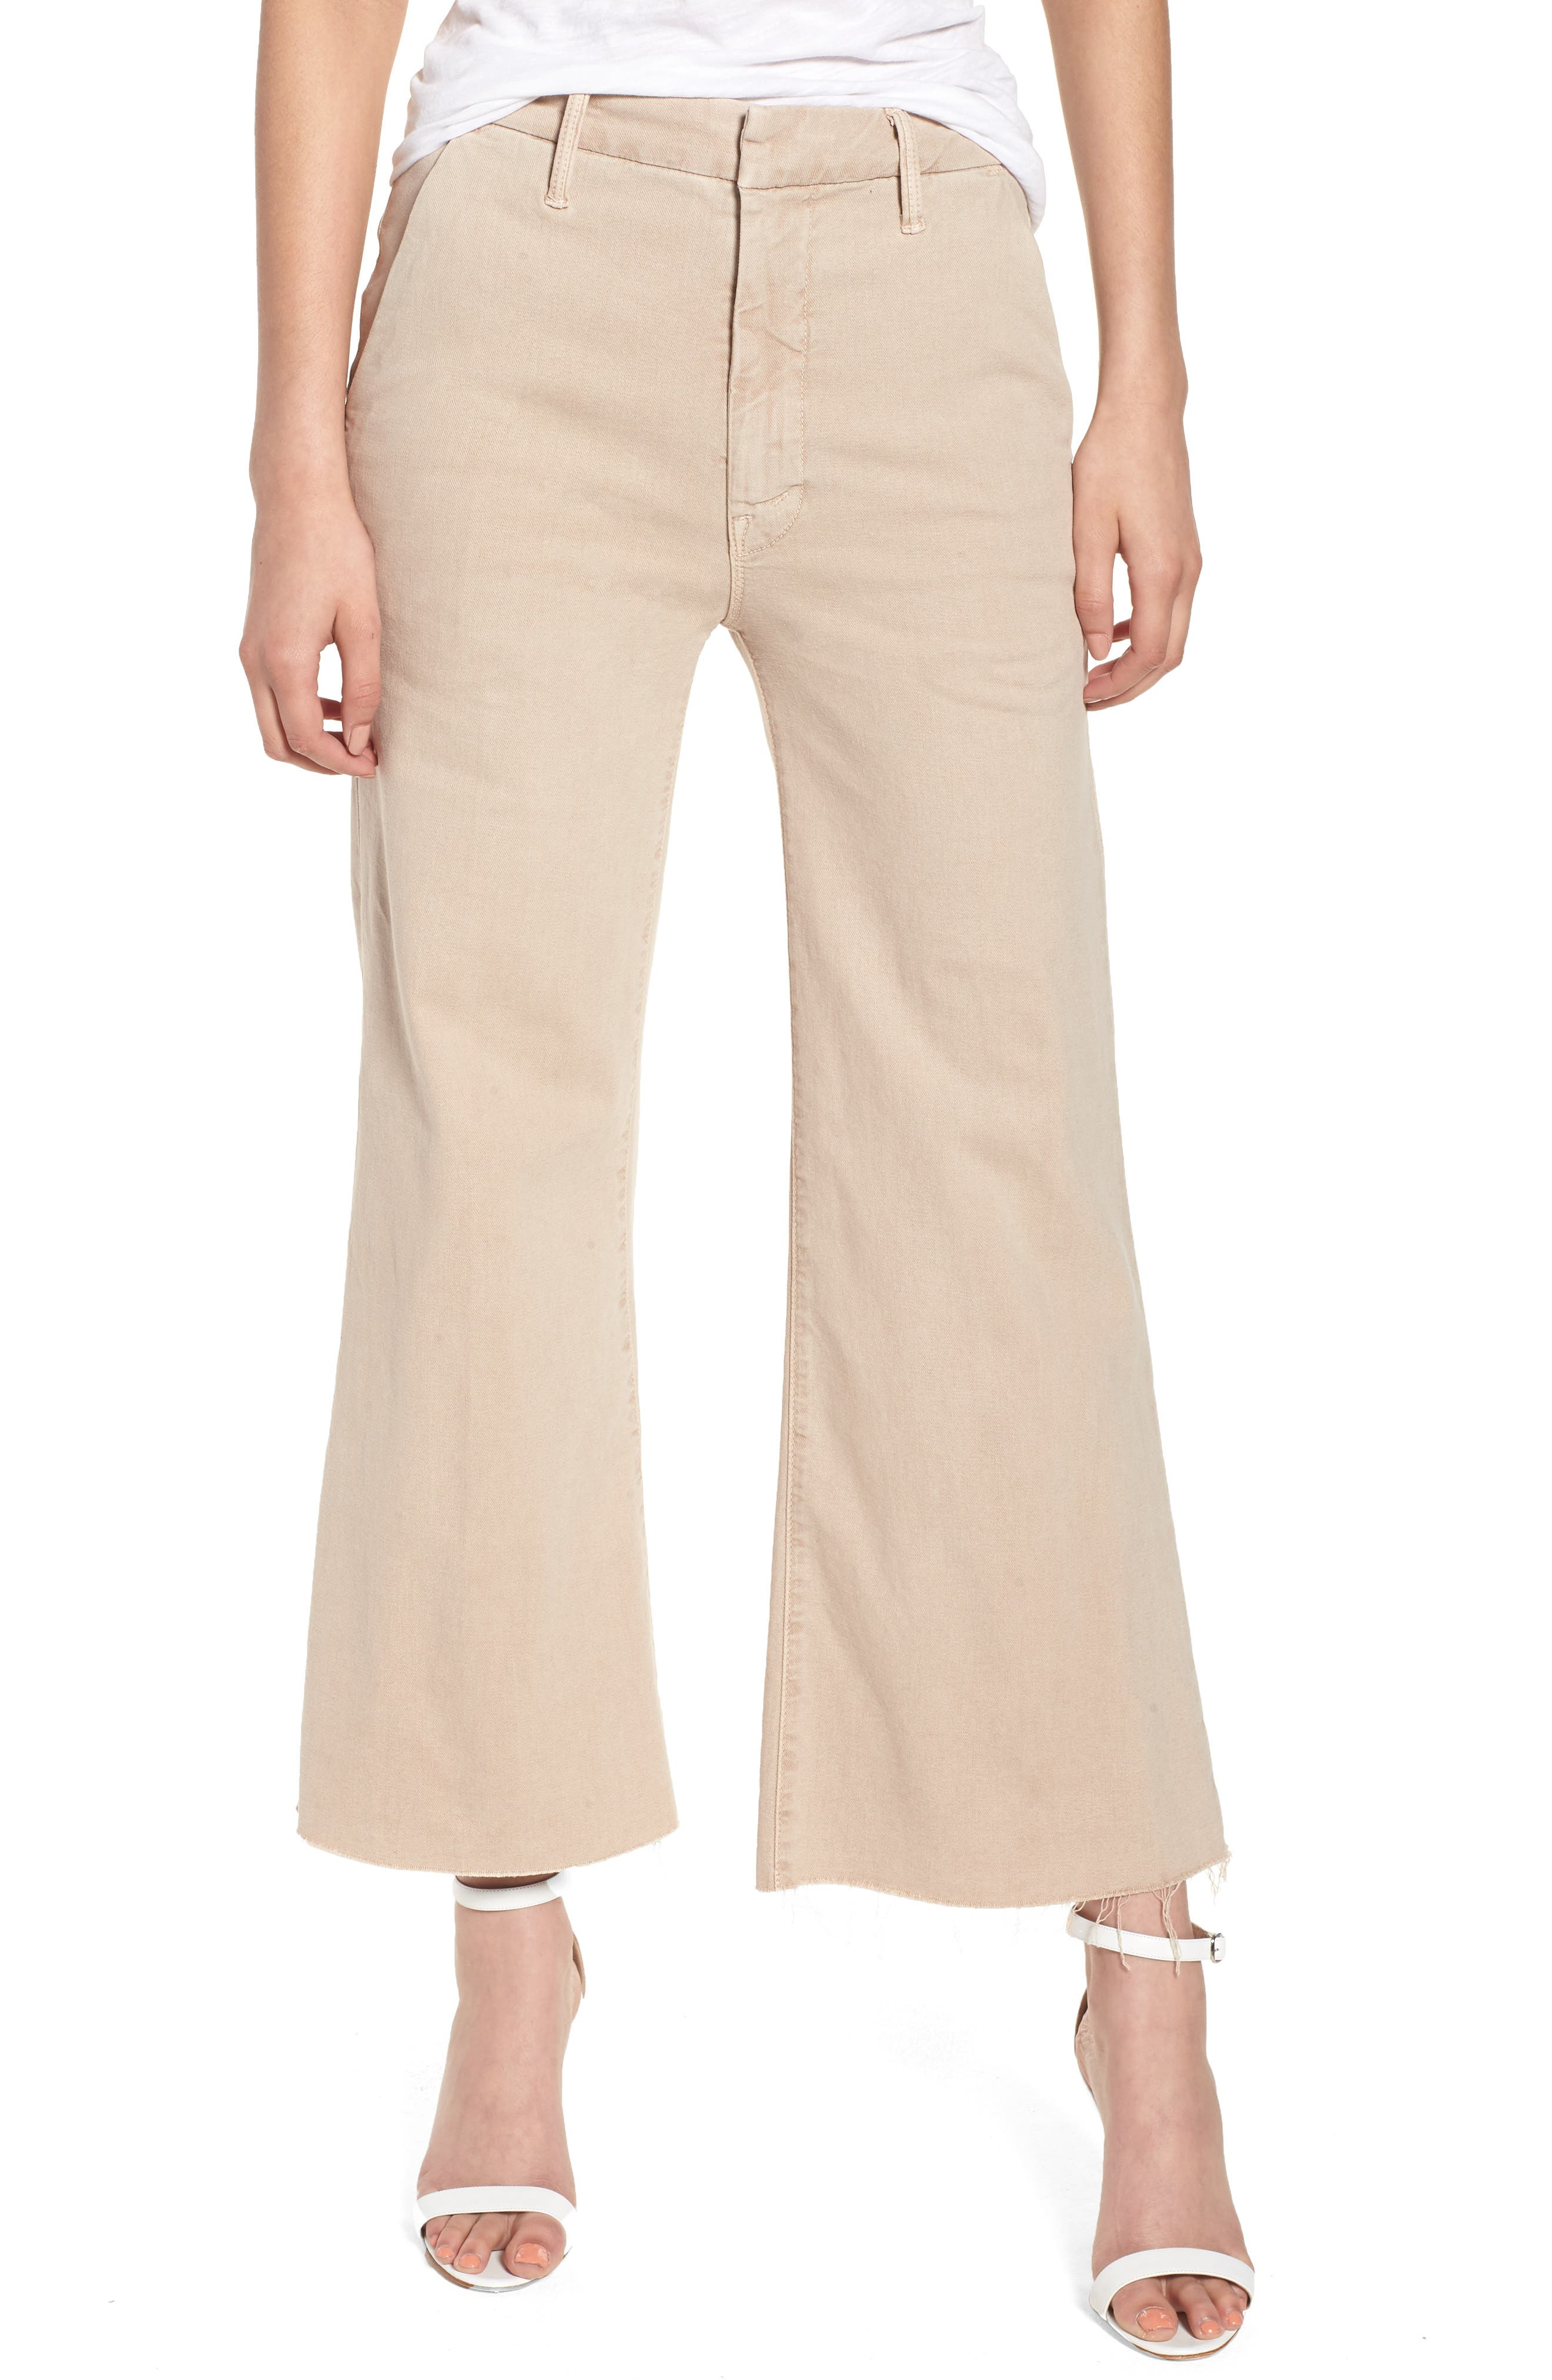 The Roller Fray Crop Wide Leg Jeans,                         Main,                         color, Khaki